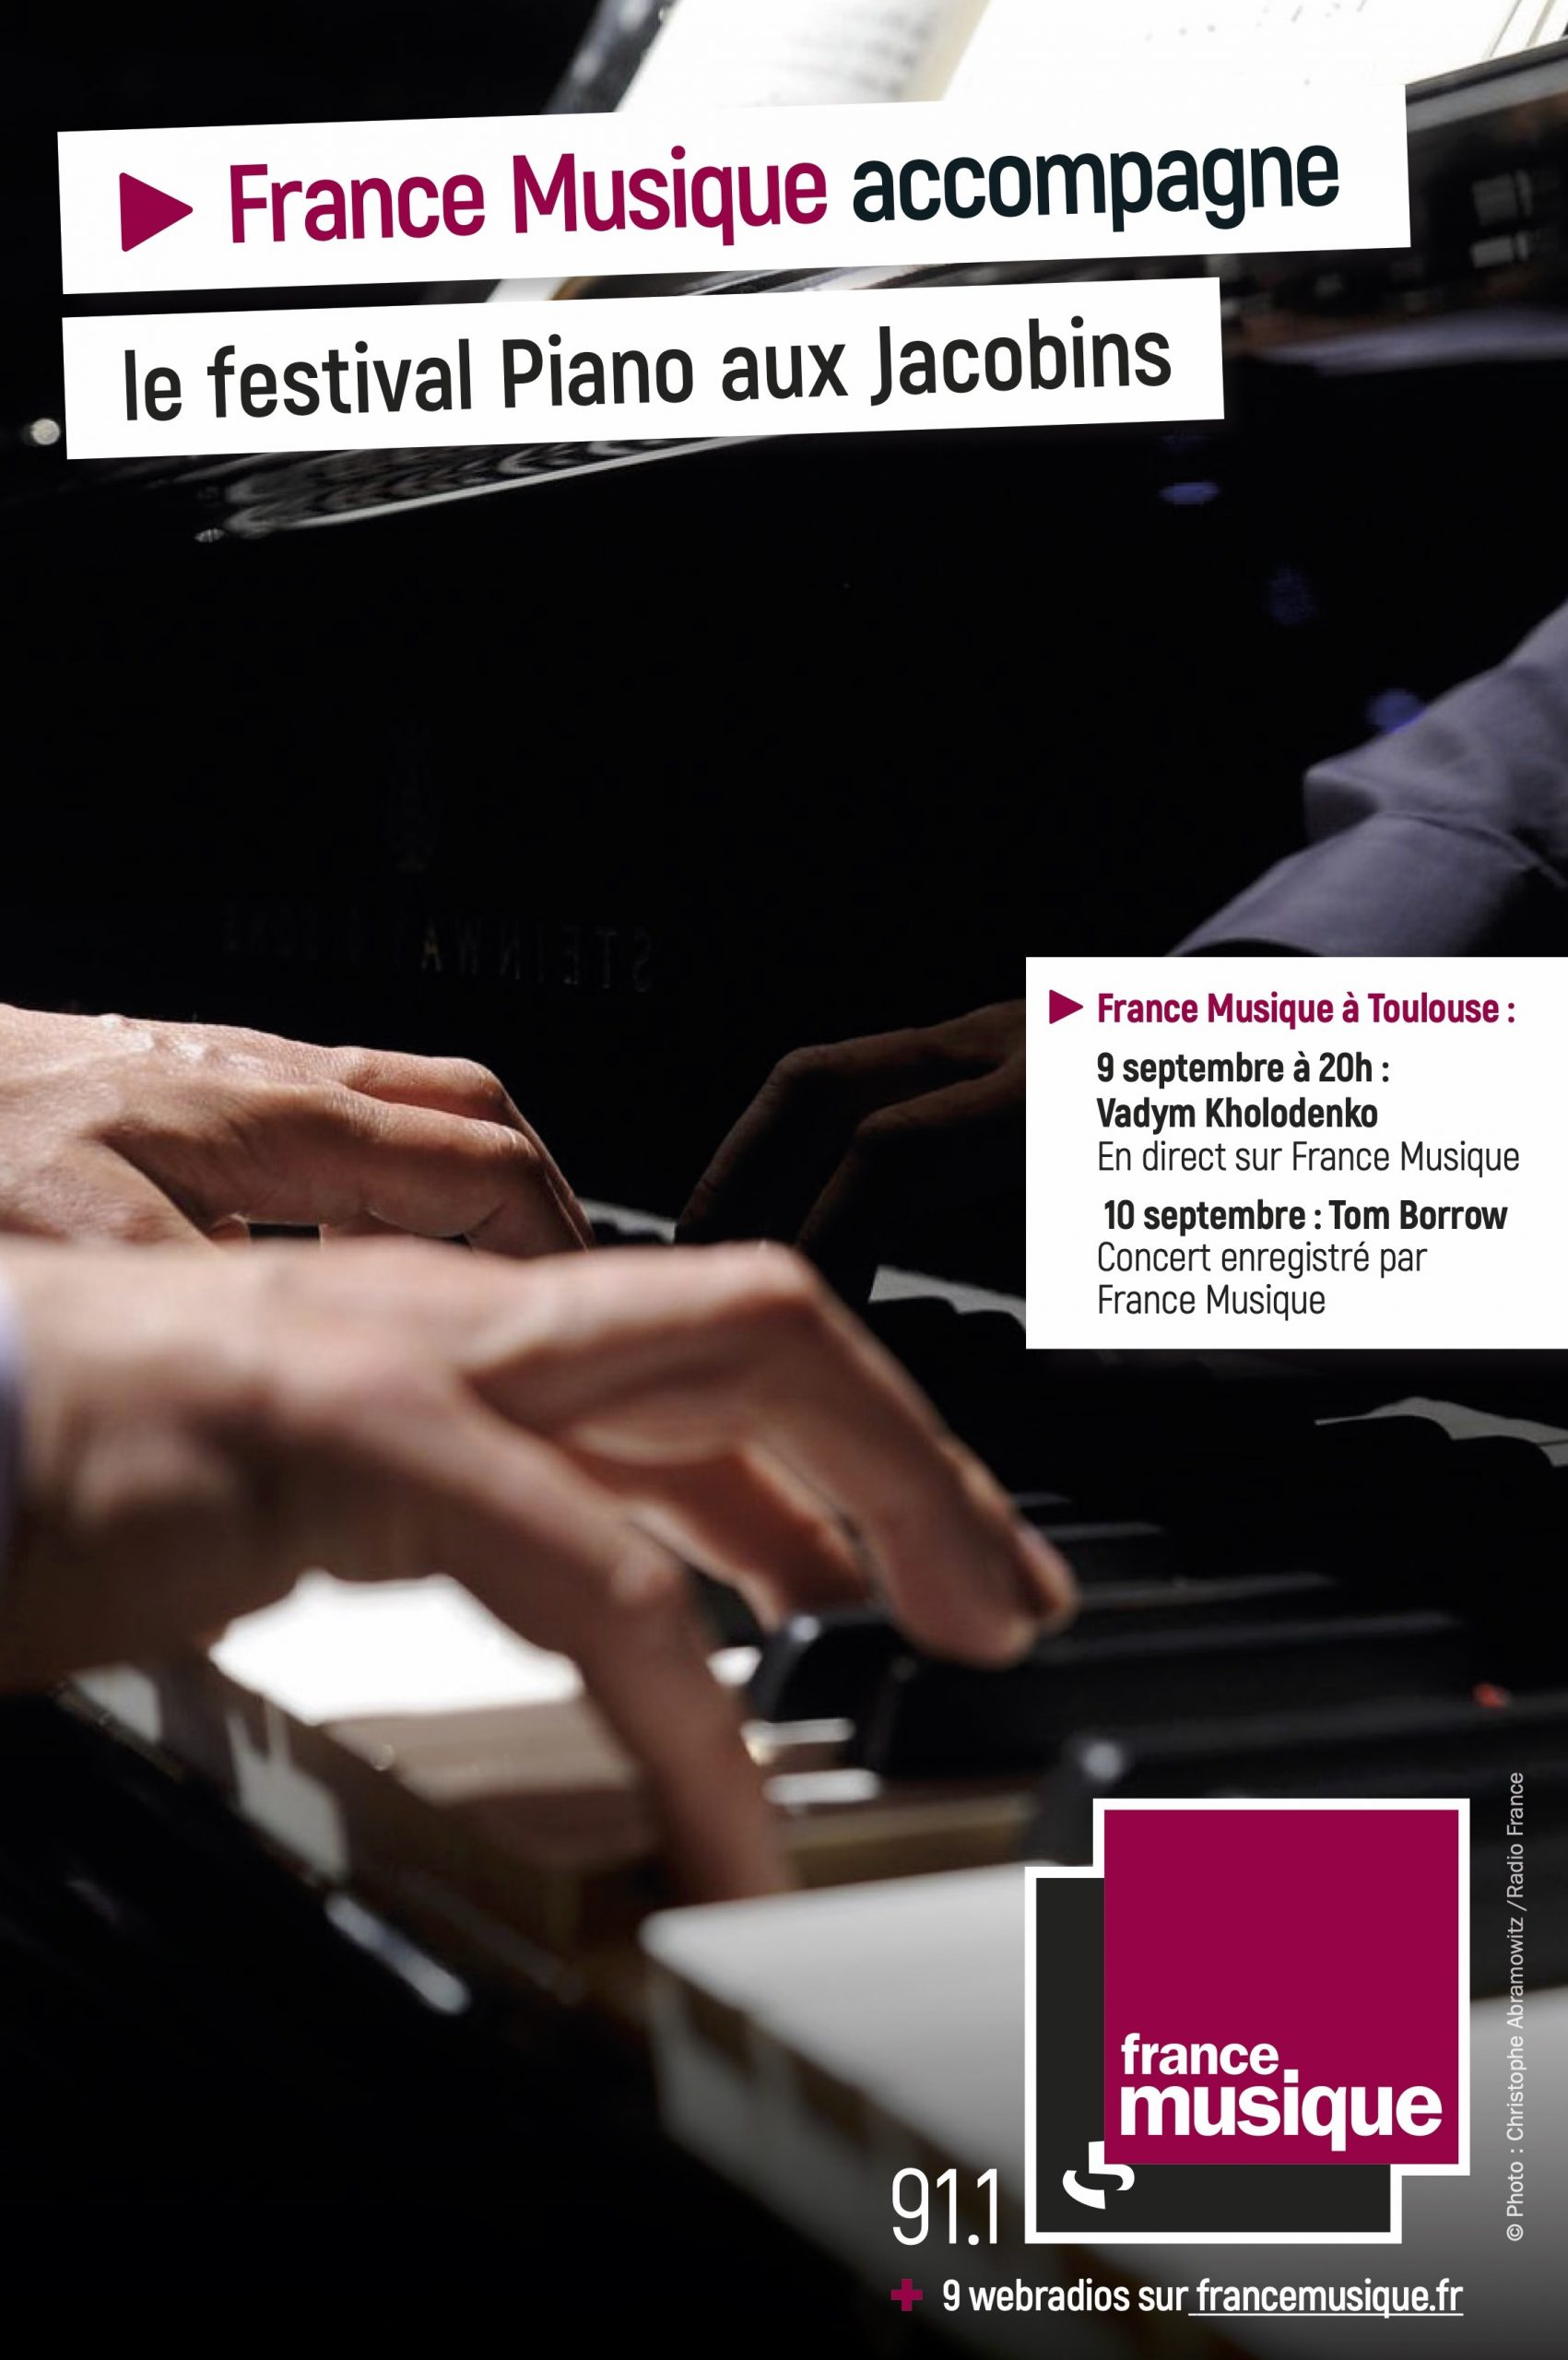 PianoJacobins France Musique Affiche 2021